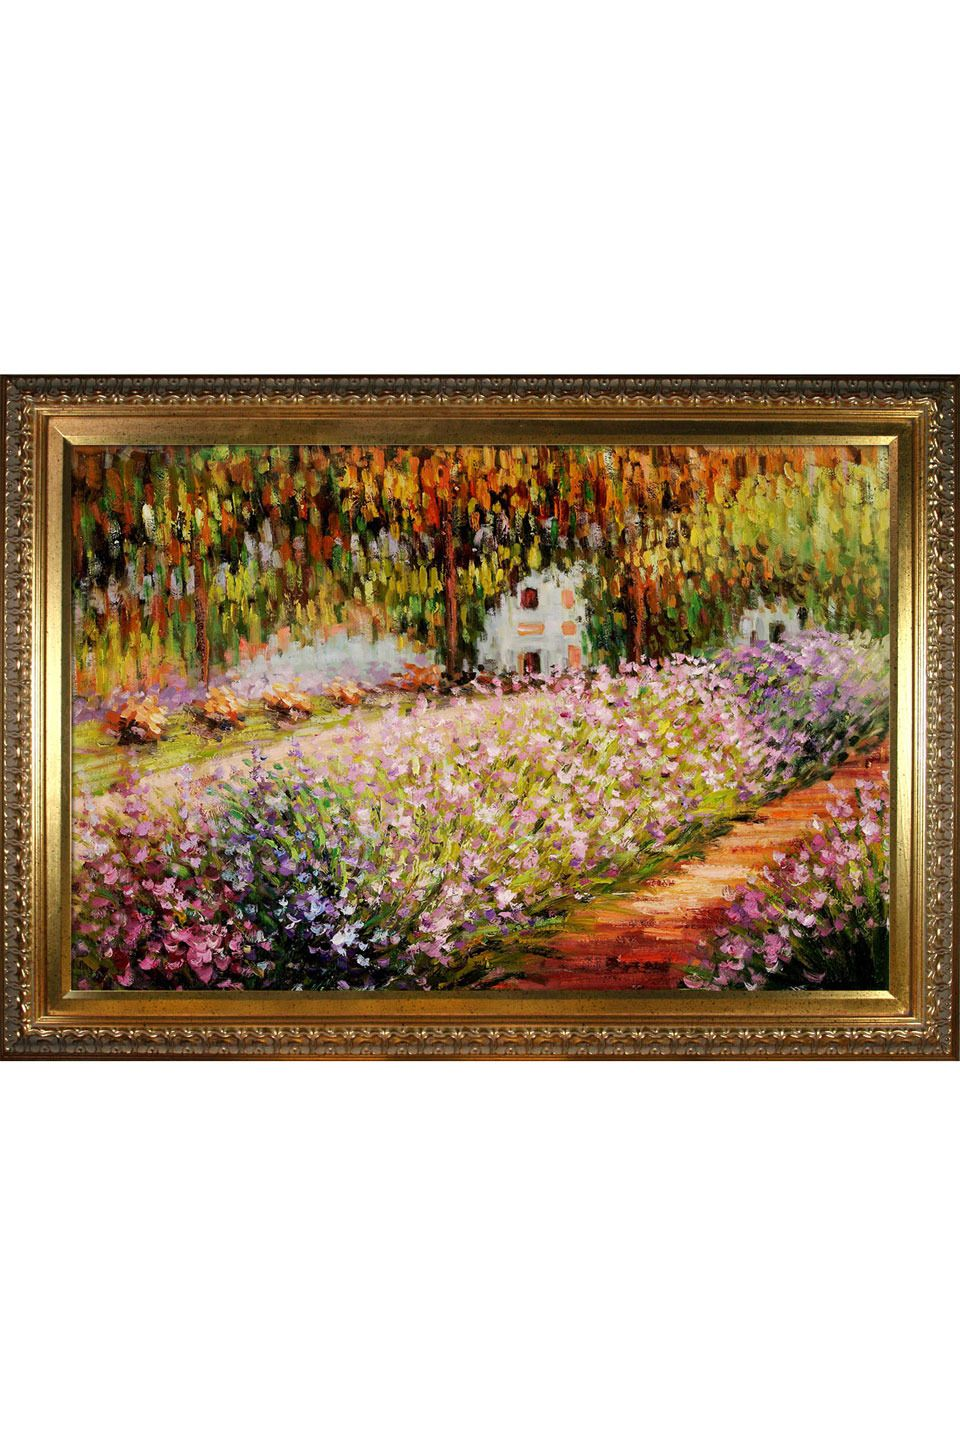 Claude artists garden at giverny oil on canvas 24